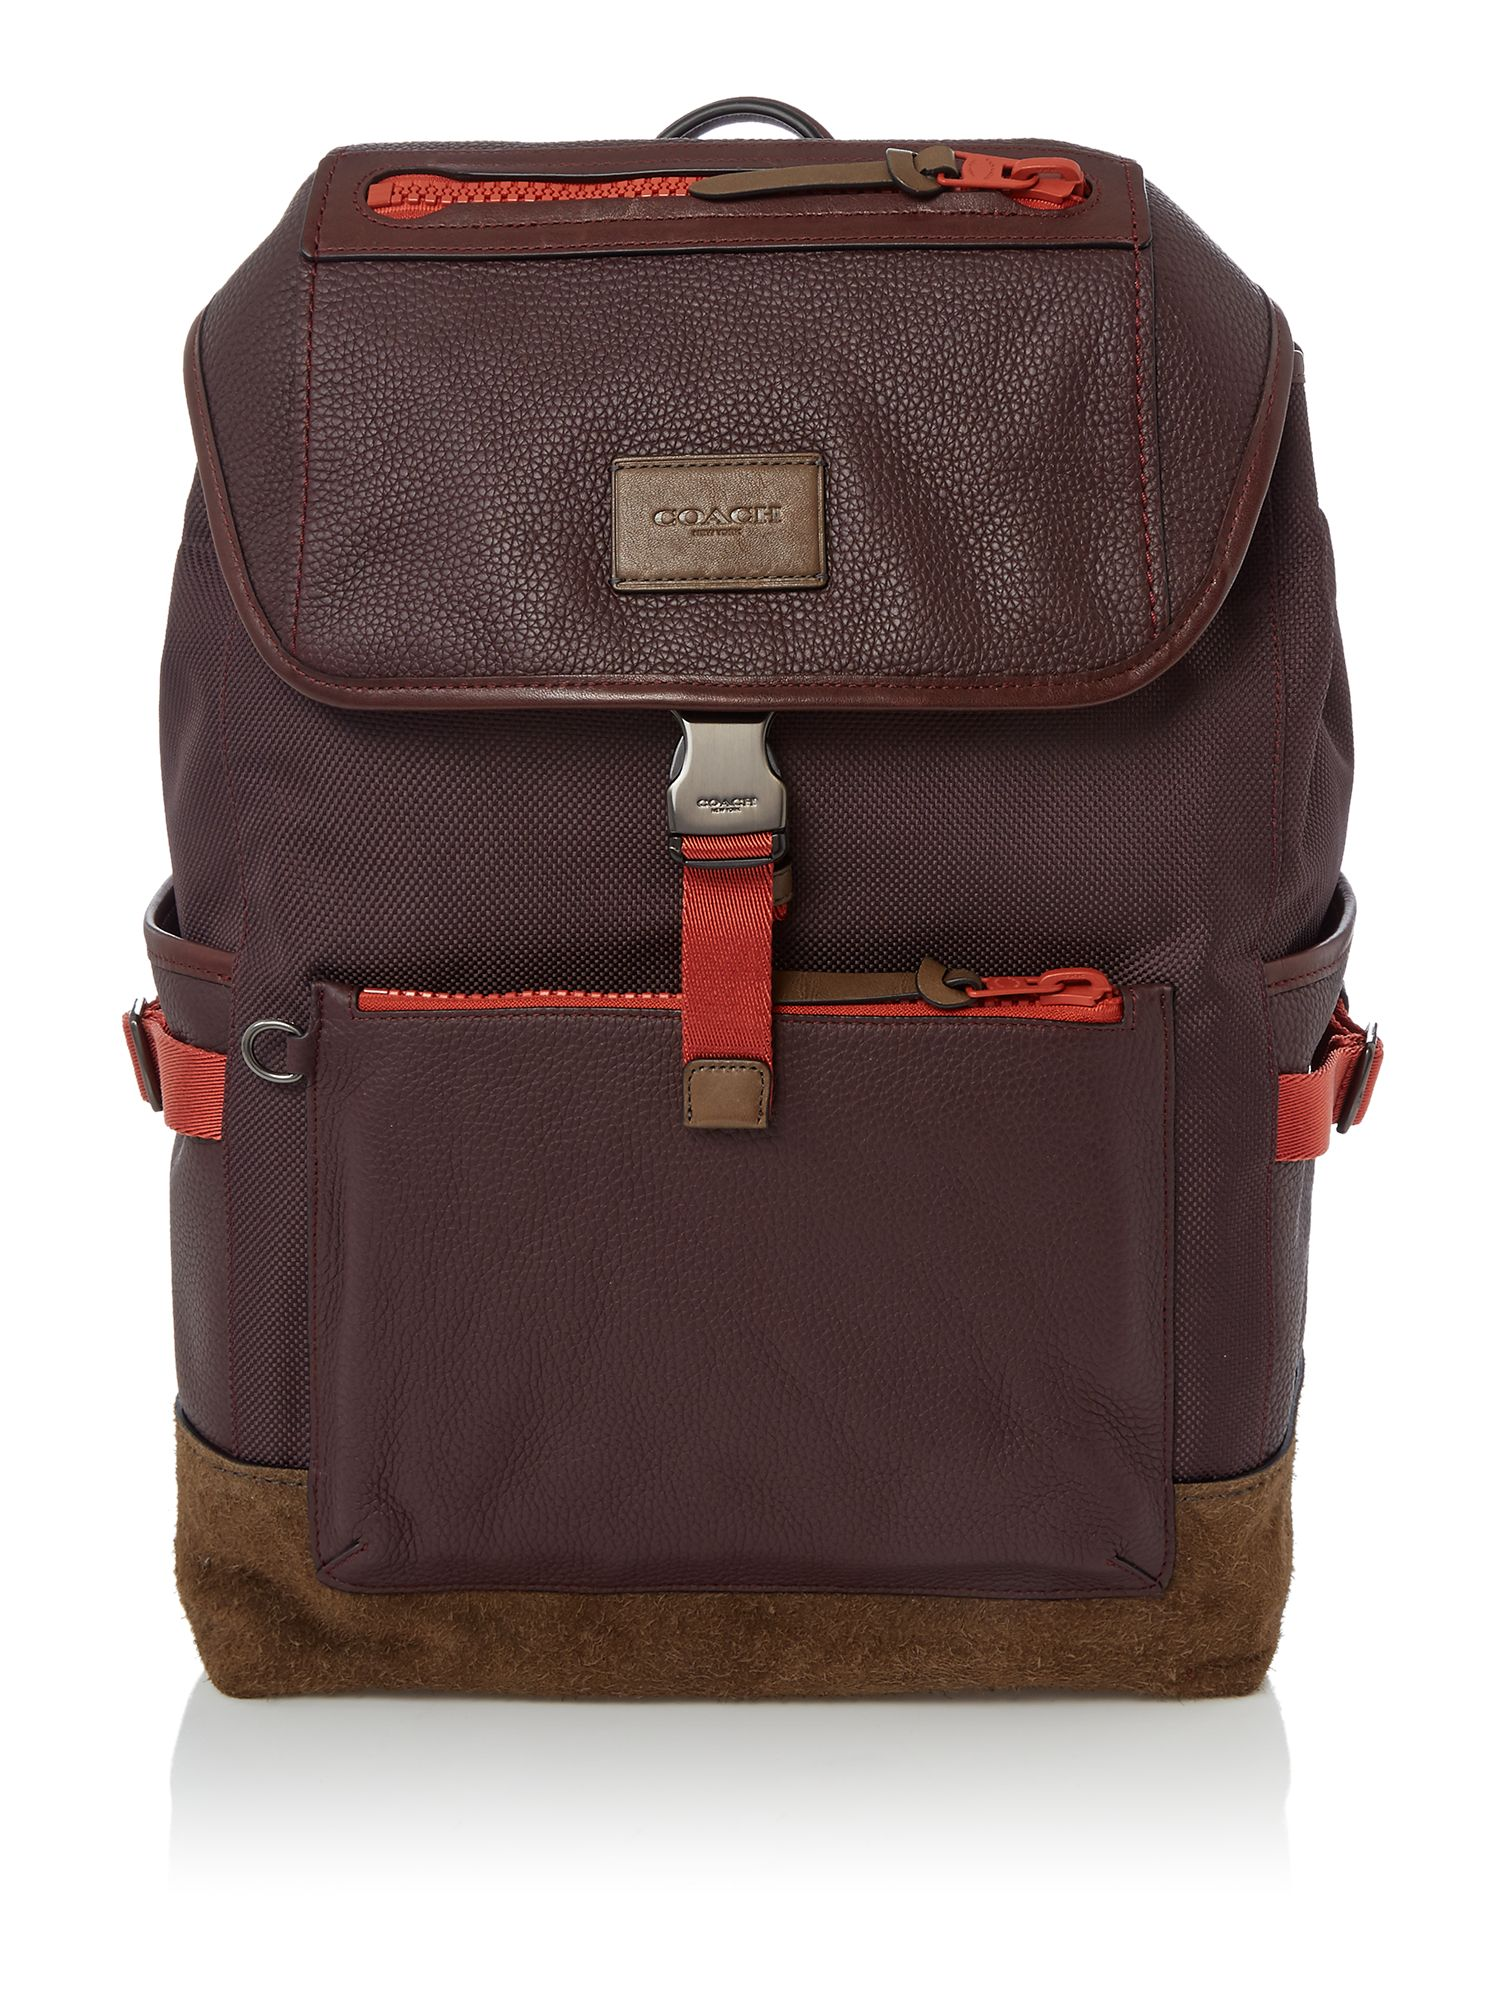 Coach Manhattan Backpack, Dark Red